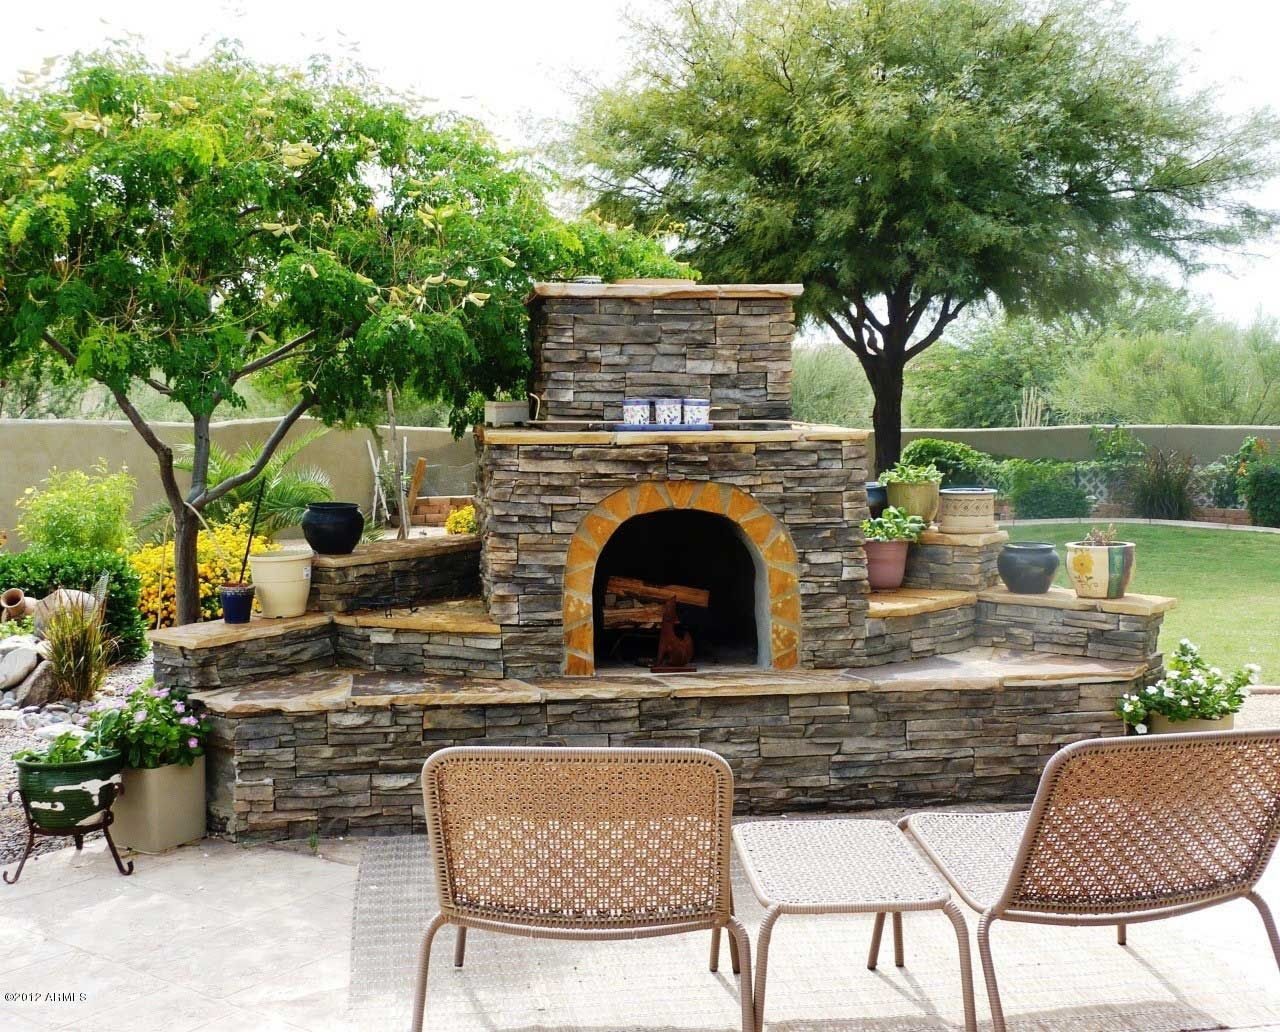 creative ideas outdoor fireplace designs outdoor design and ideas - Patio Fireplace Designs